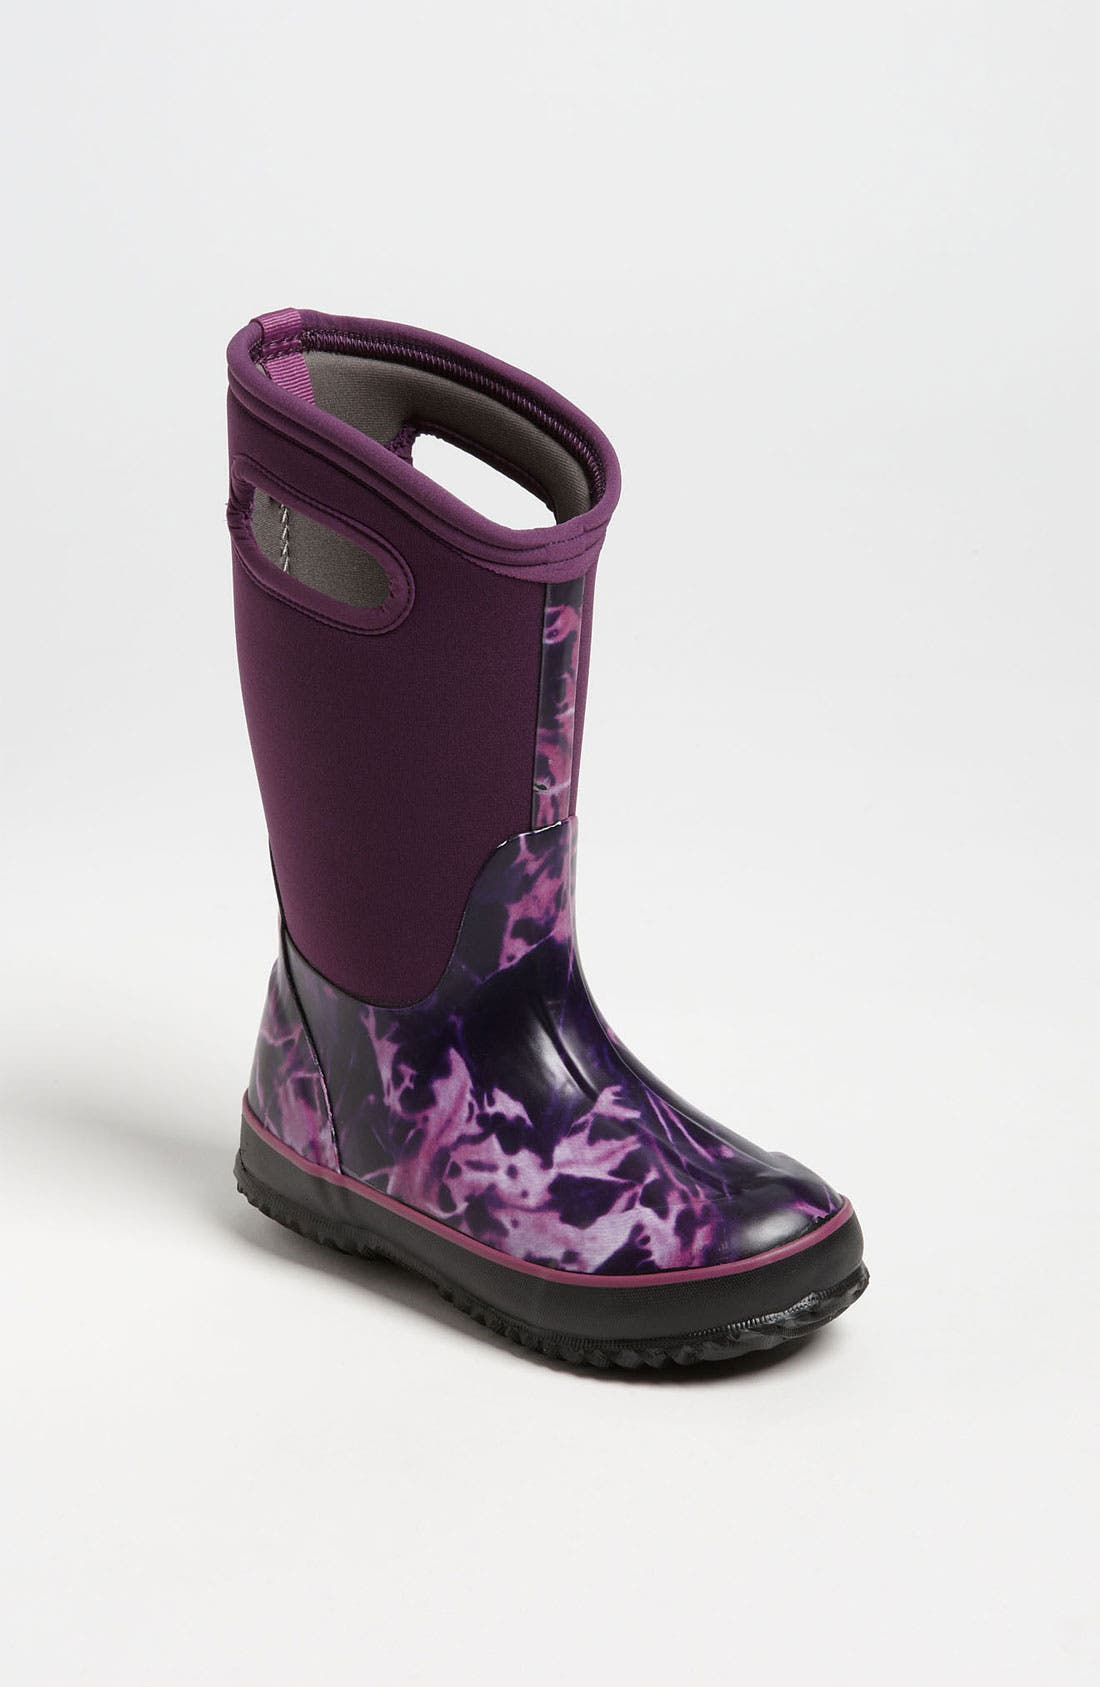 Alternate Image 1 Selected - Bogs 'Classic High - Batik' Waterproof Boot (Toddler, Little Kid & Big Kid)